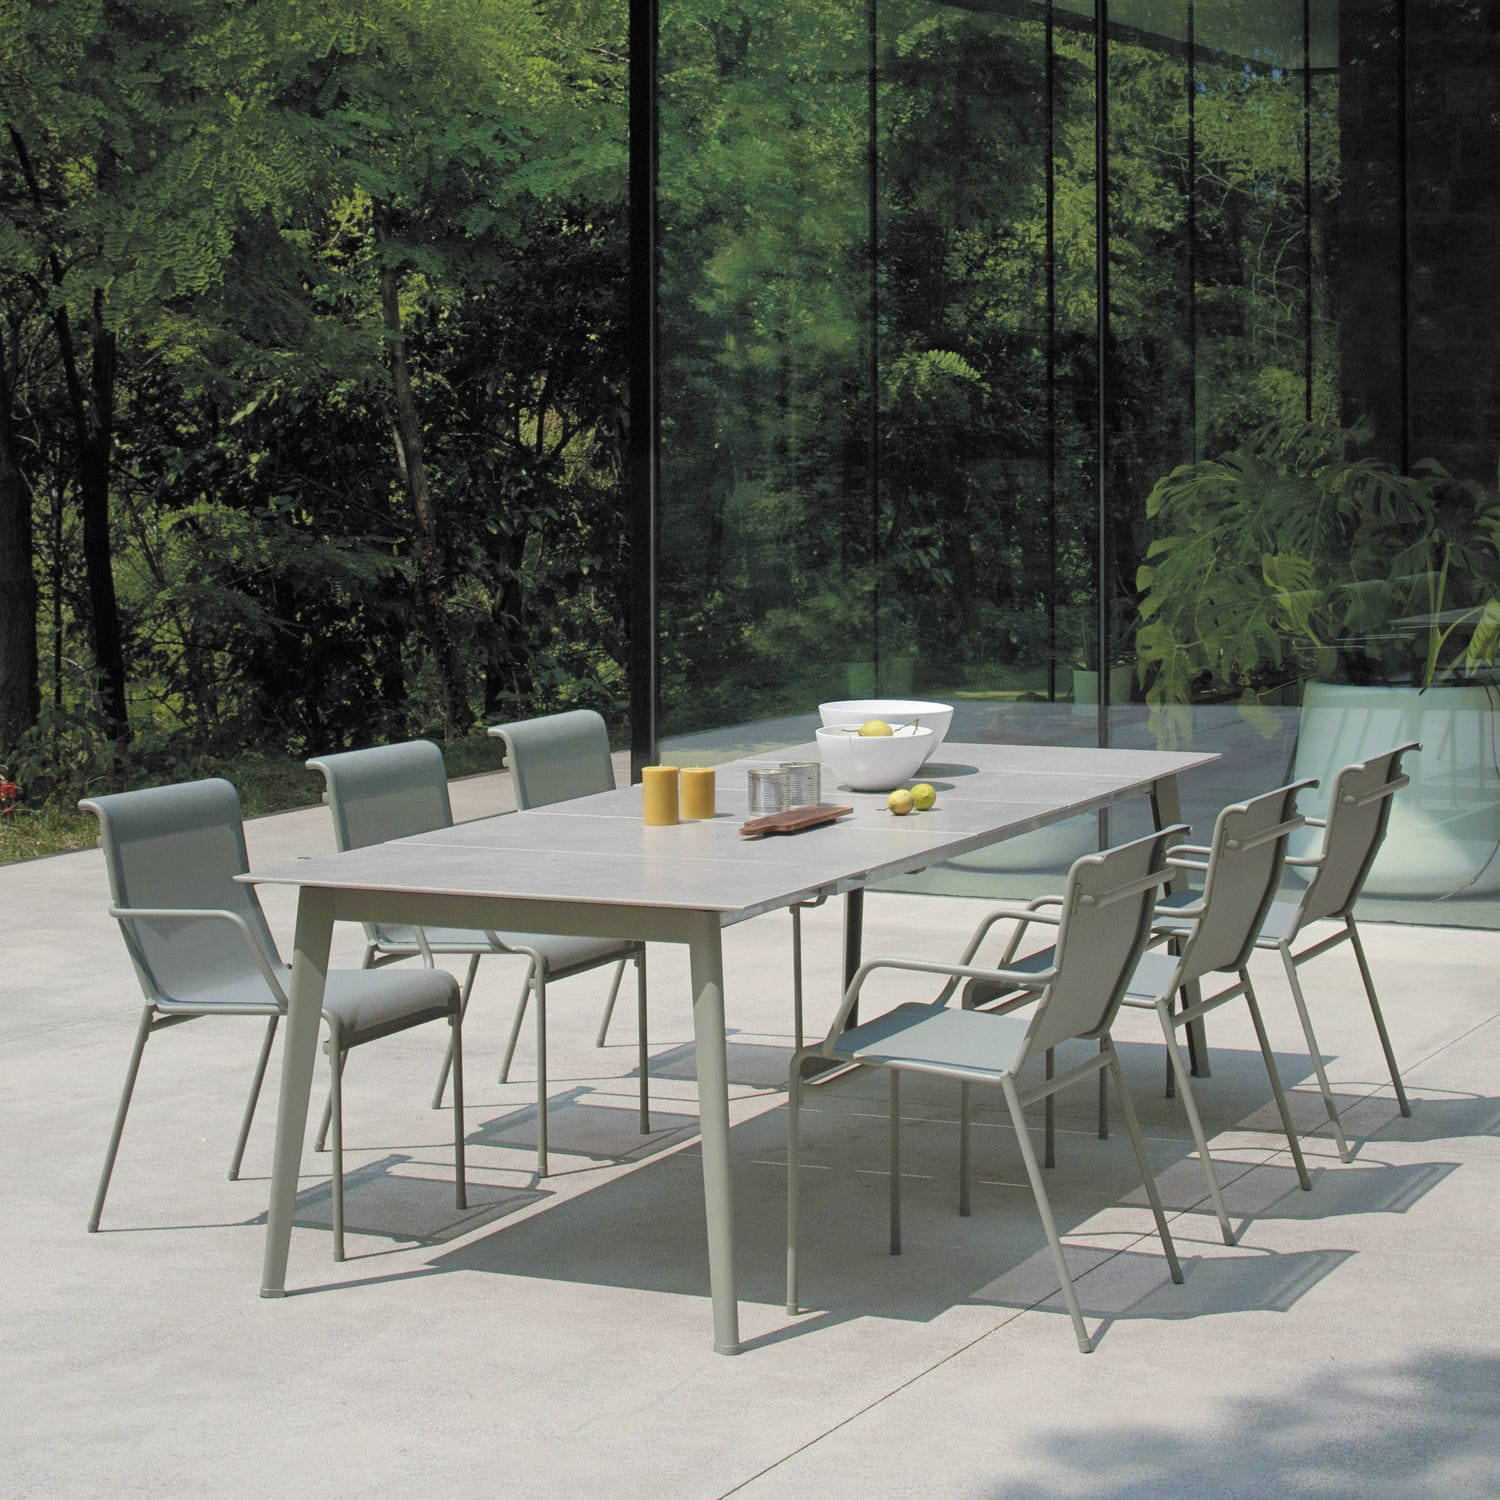 Popular Contemporary table / ceramic / aluminum / rectangular - KIRA - EMU QV28